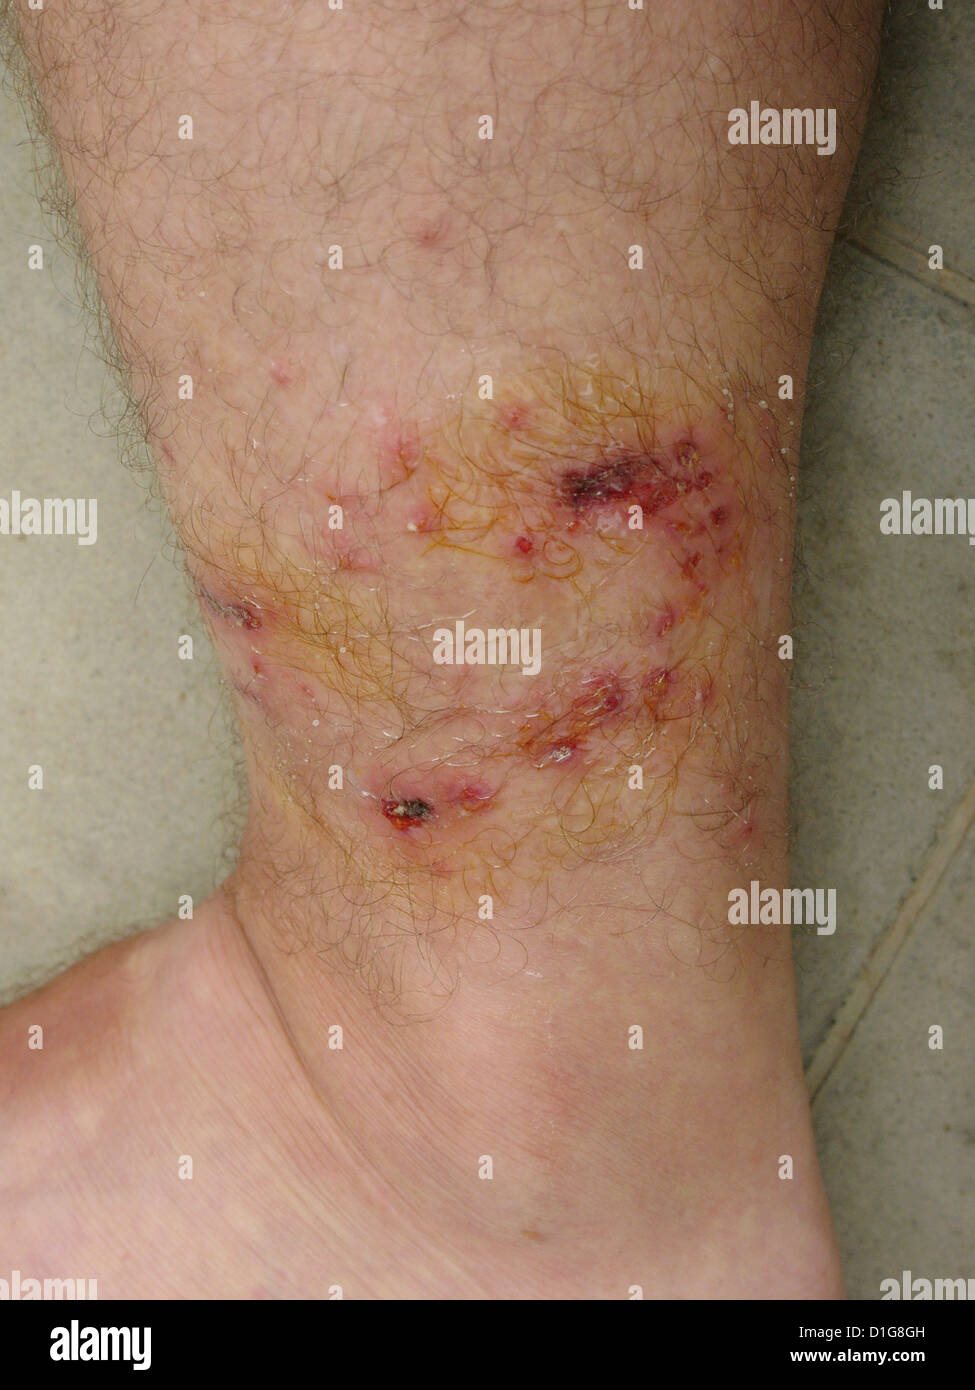 Human Rabies From Dog Bite